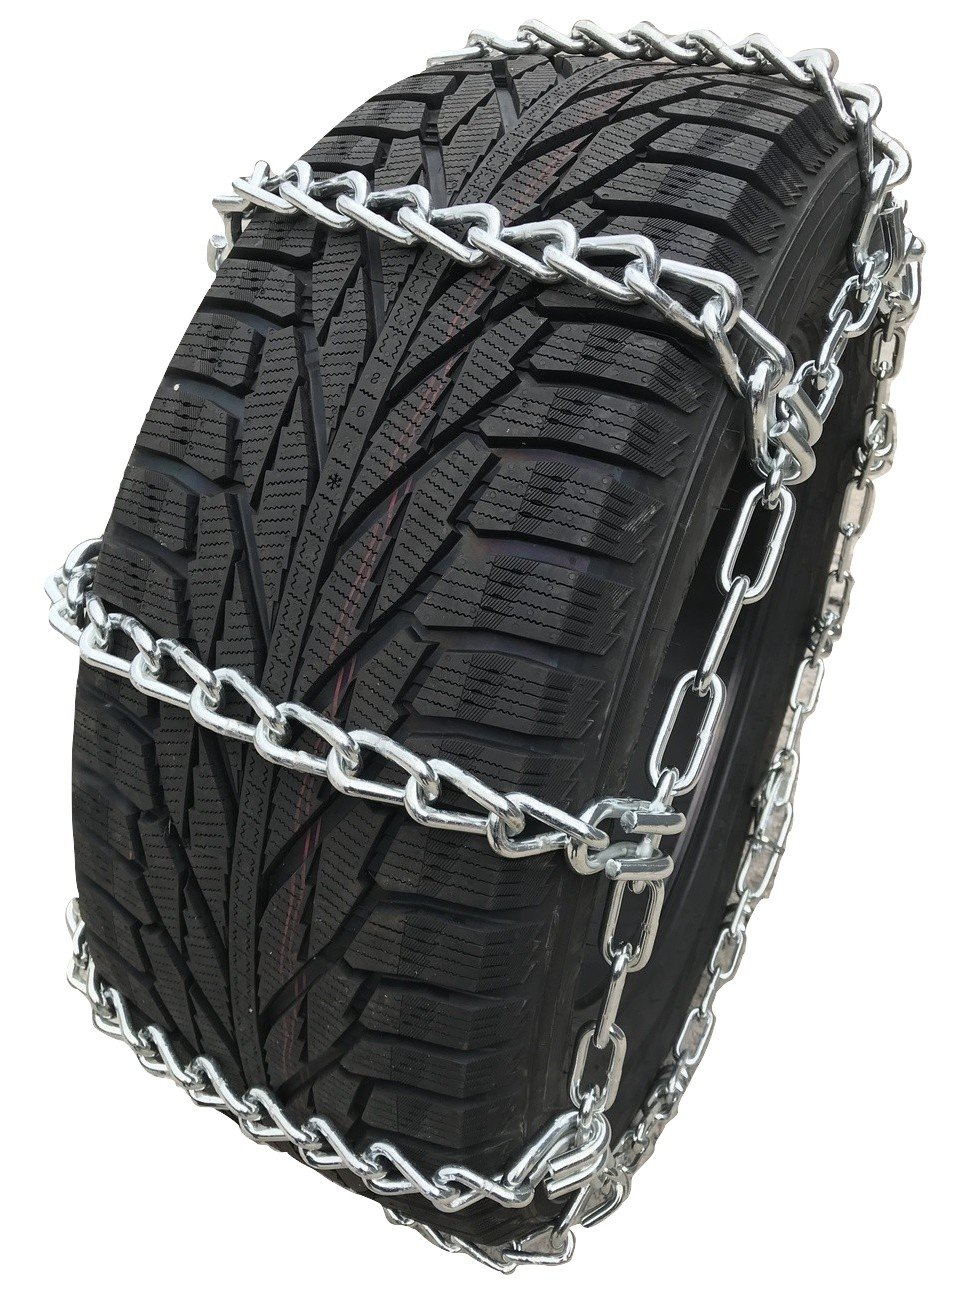 245//70 19.5 Extra Heavy Duty Mud Tire Chains Set of 2 TireChain.com 245//70R19.5